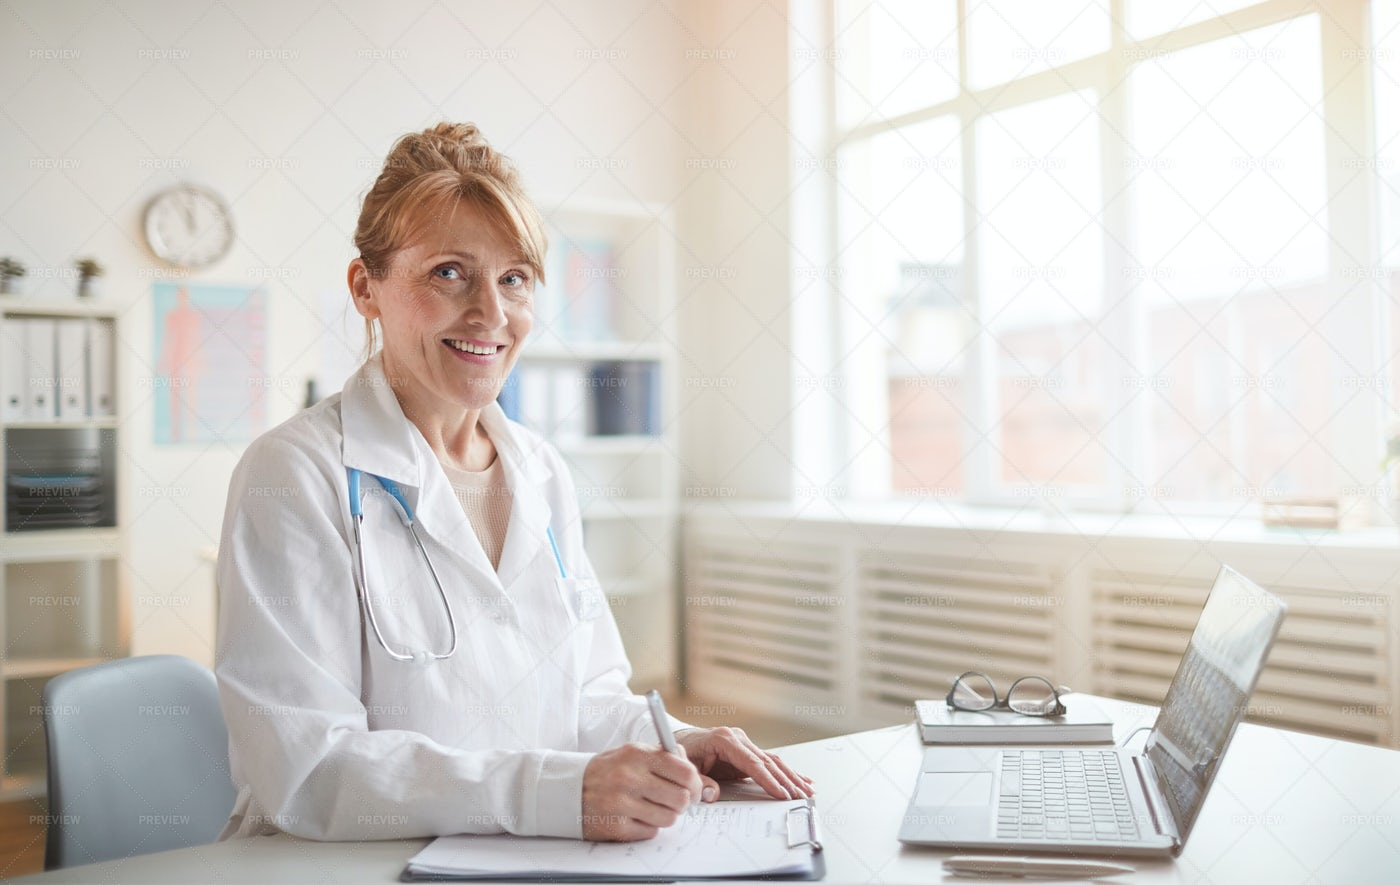 Medical Professional At The Office: Stock Photos